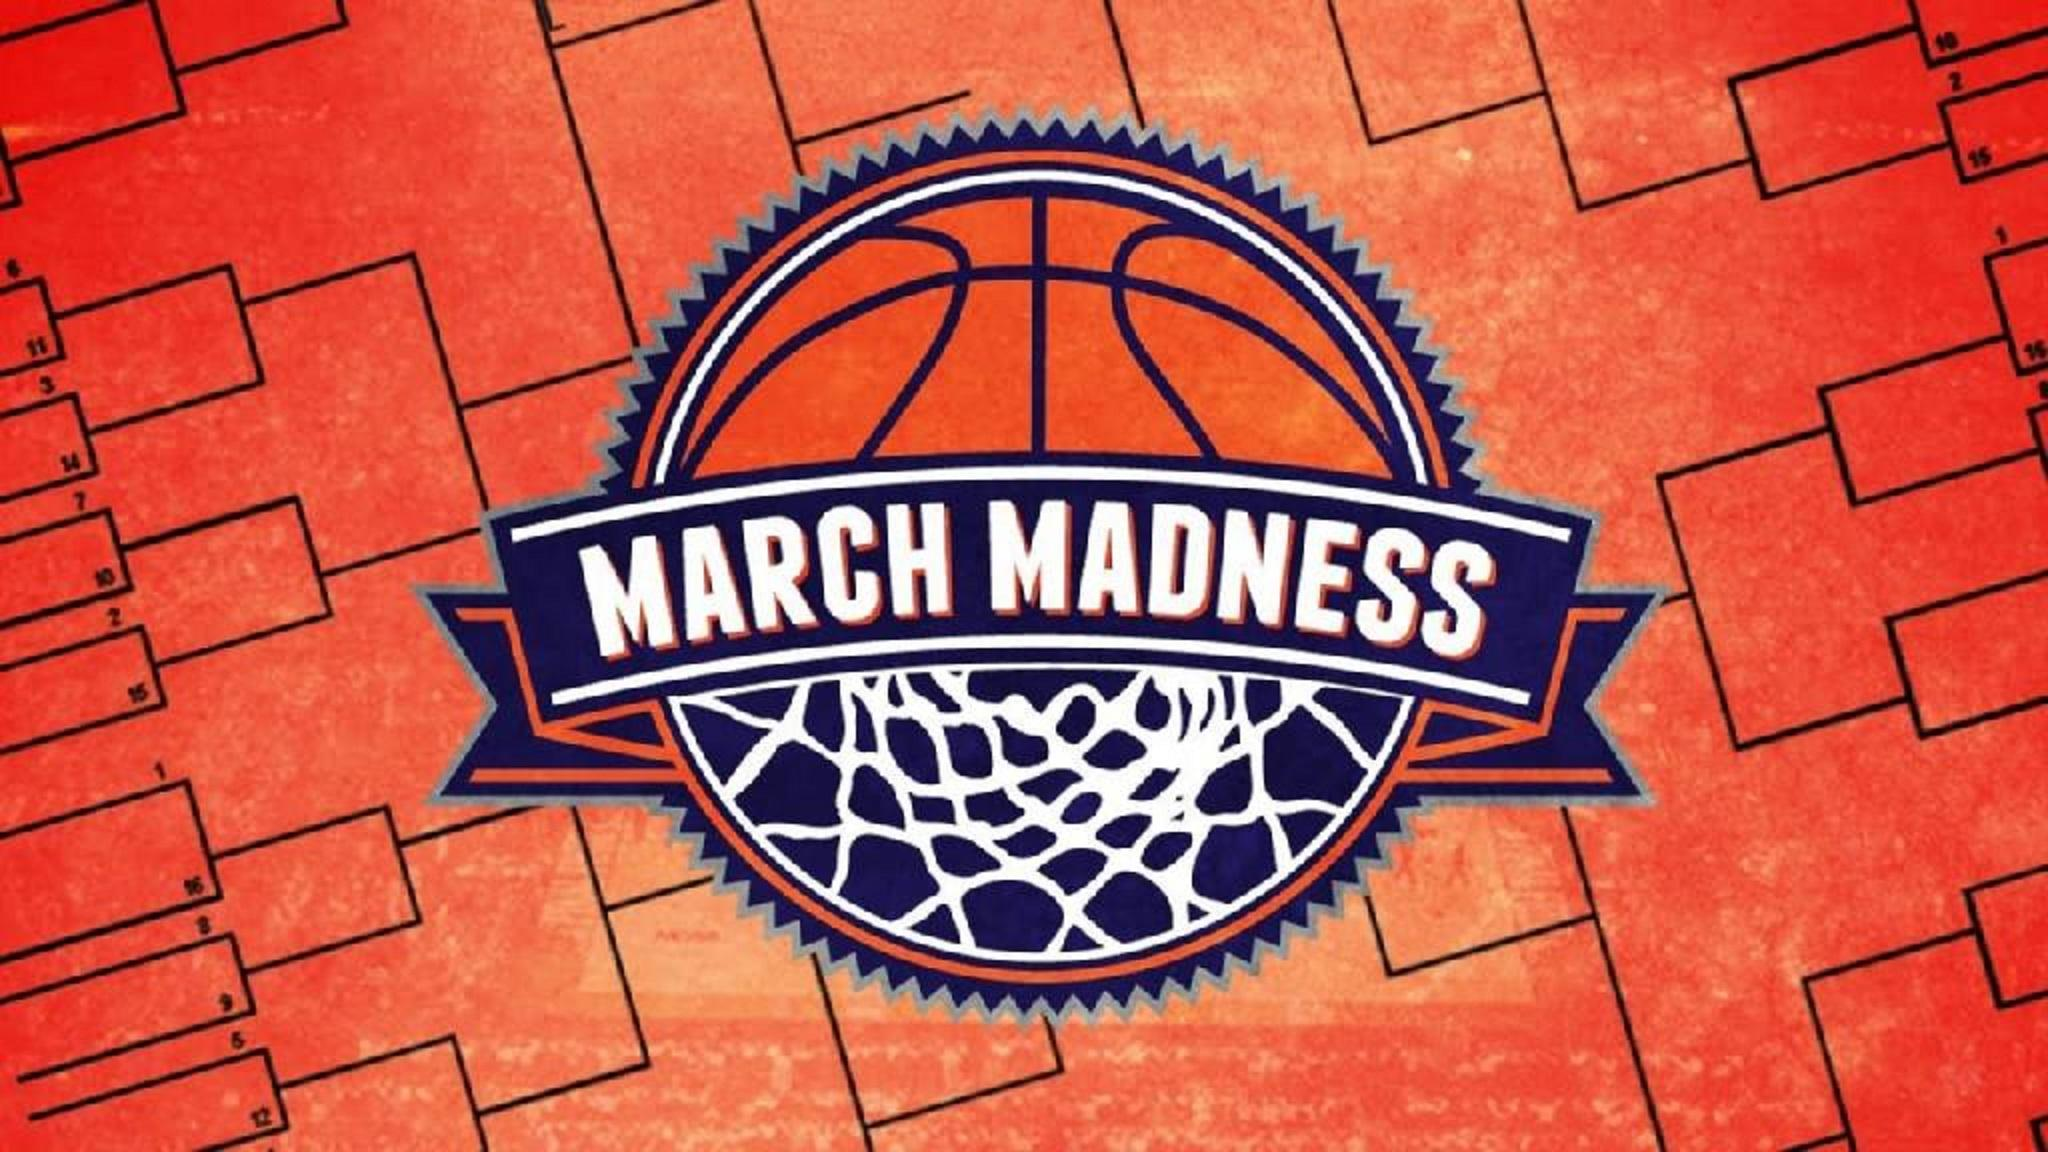 March Maddness @ACTIONSPOT - WORK AND WATCH G